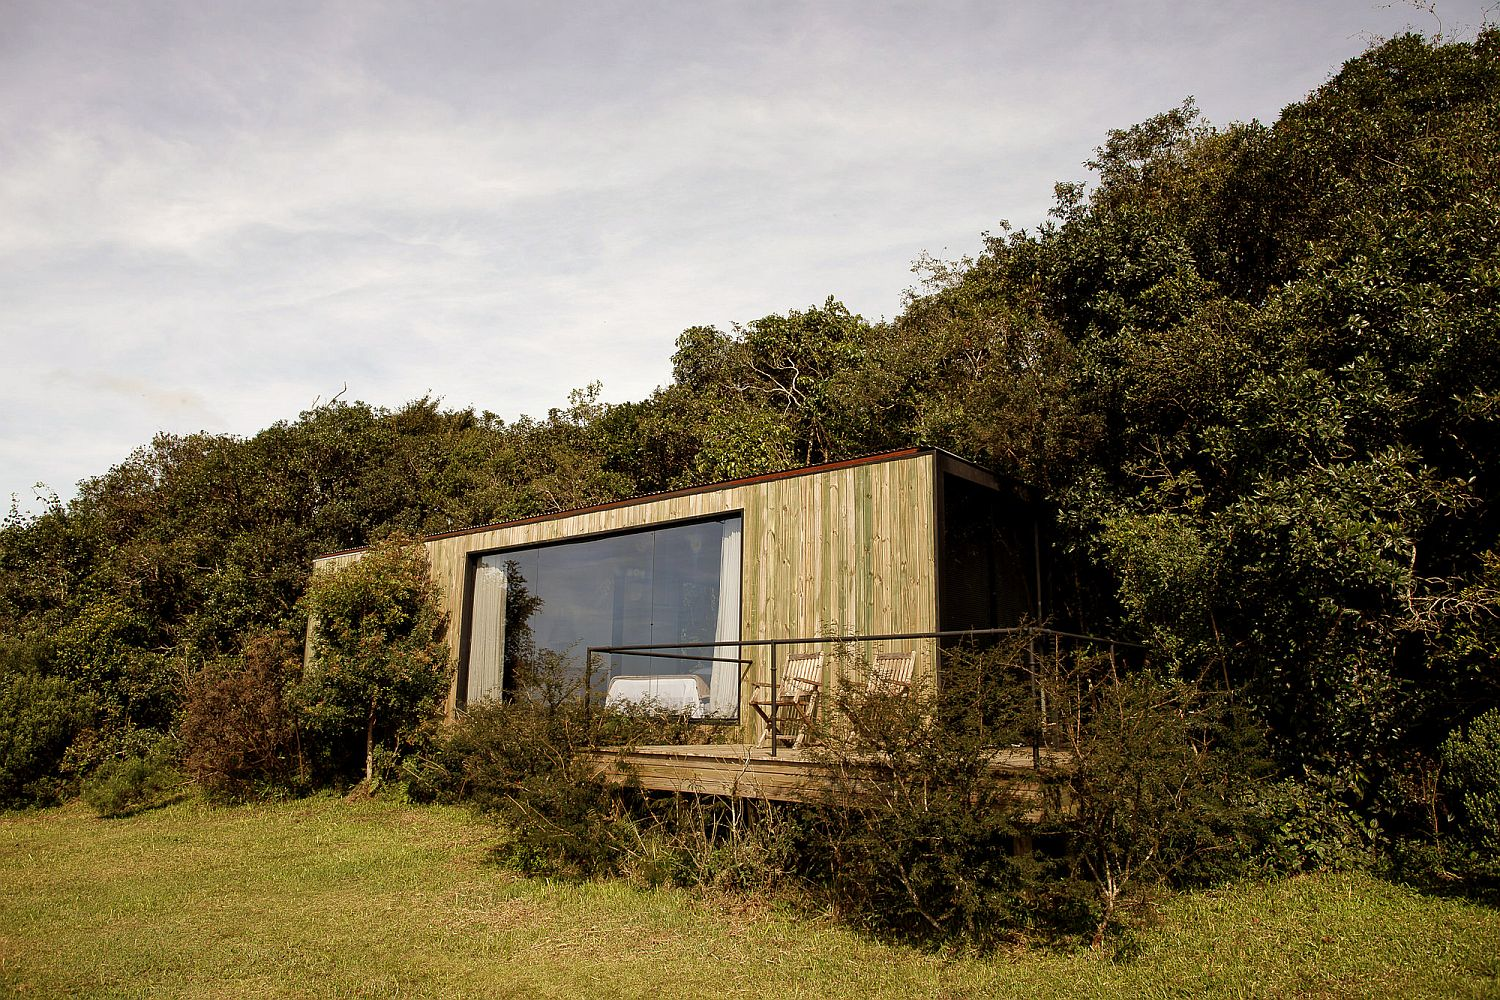 Bosque-Refuge-in-Brazil-surrounded-by-greenery